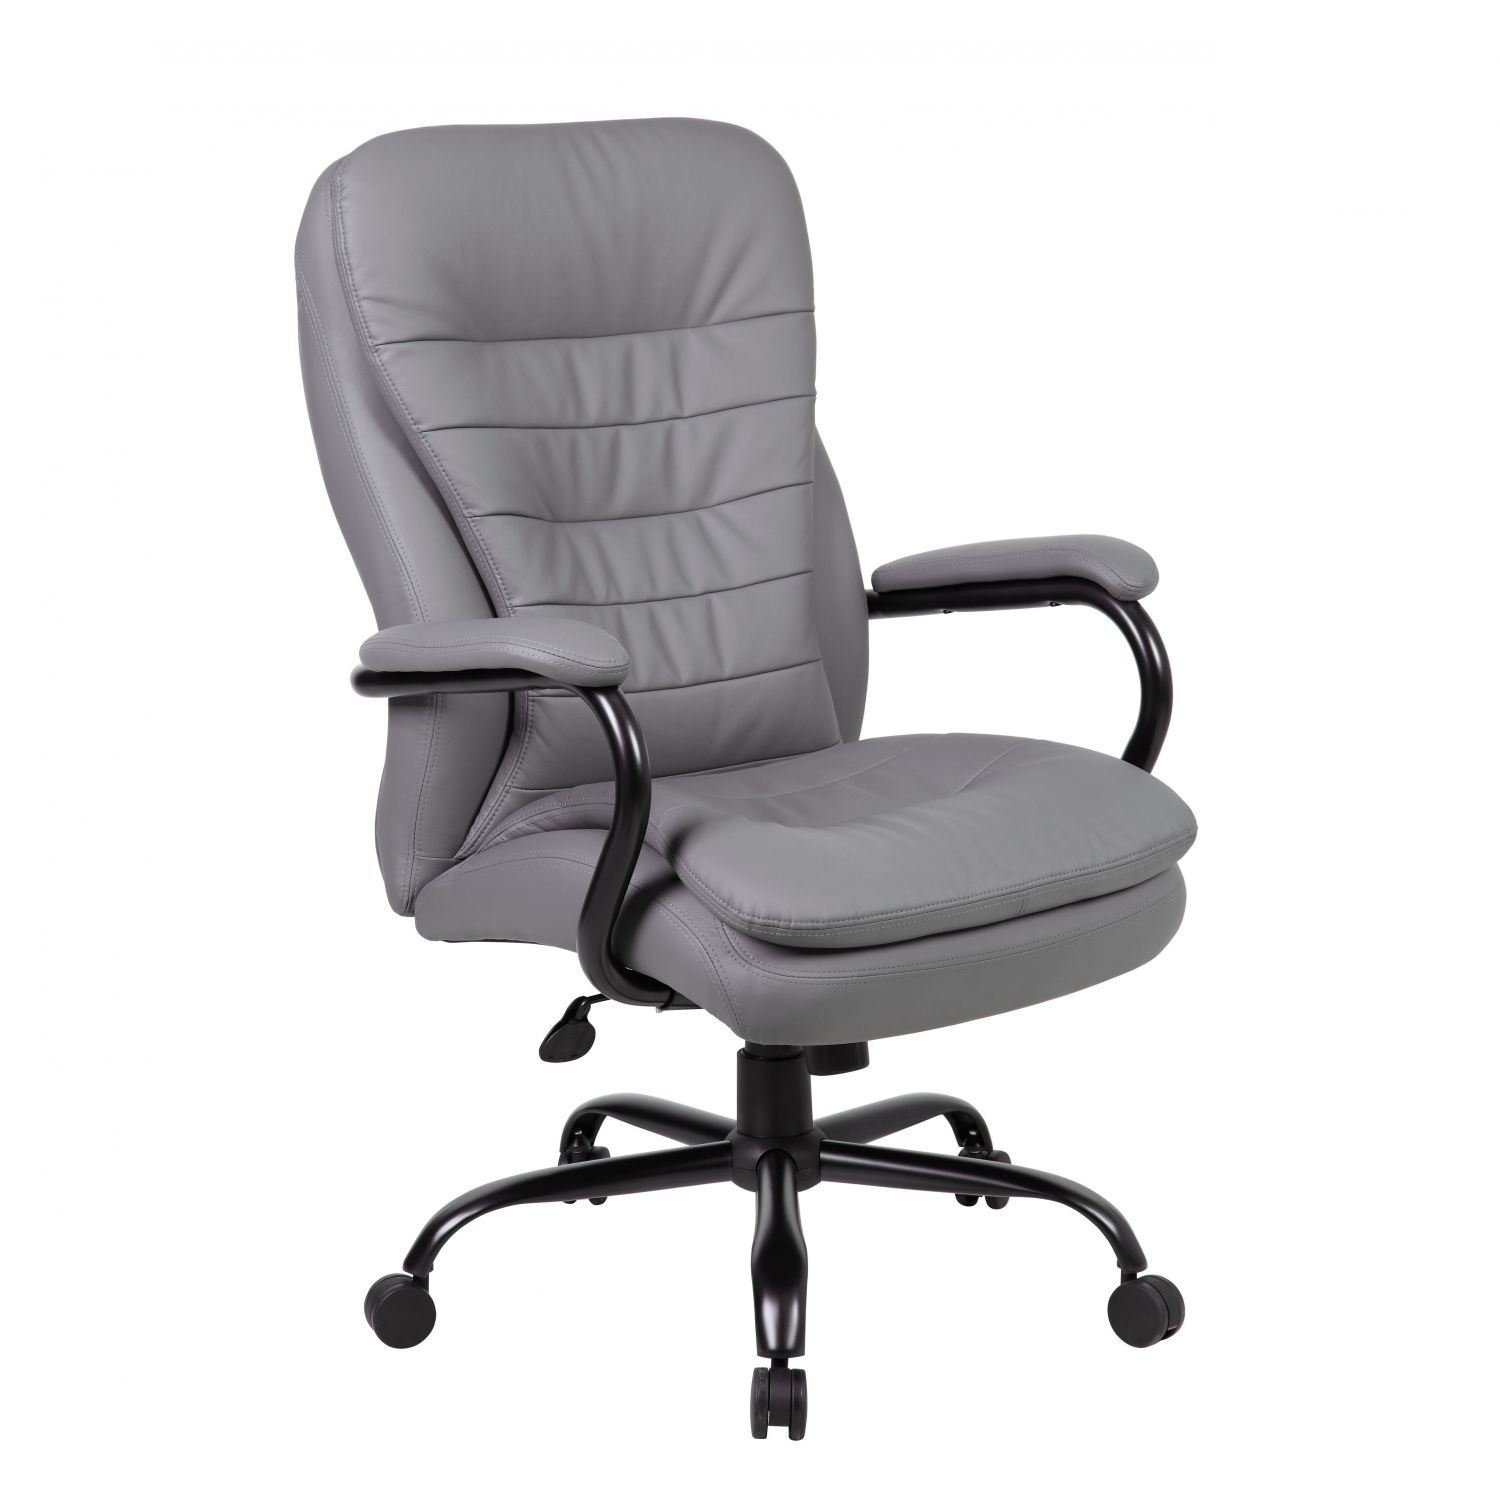 Grey Heavy Duty High Back Office Chair